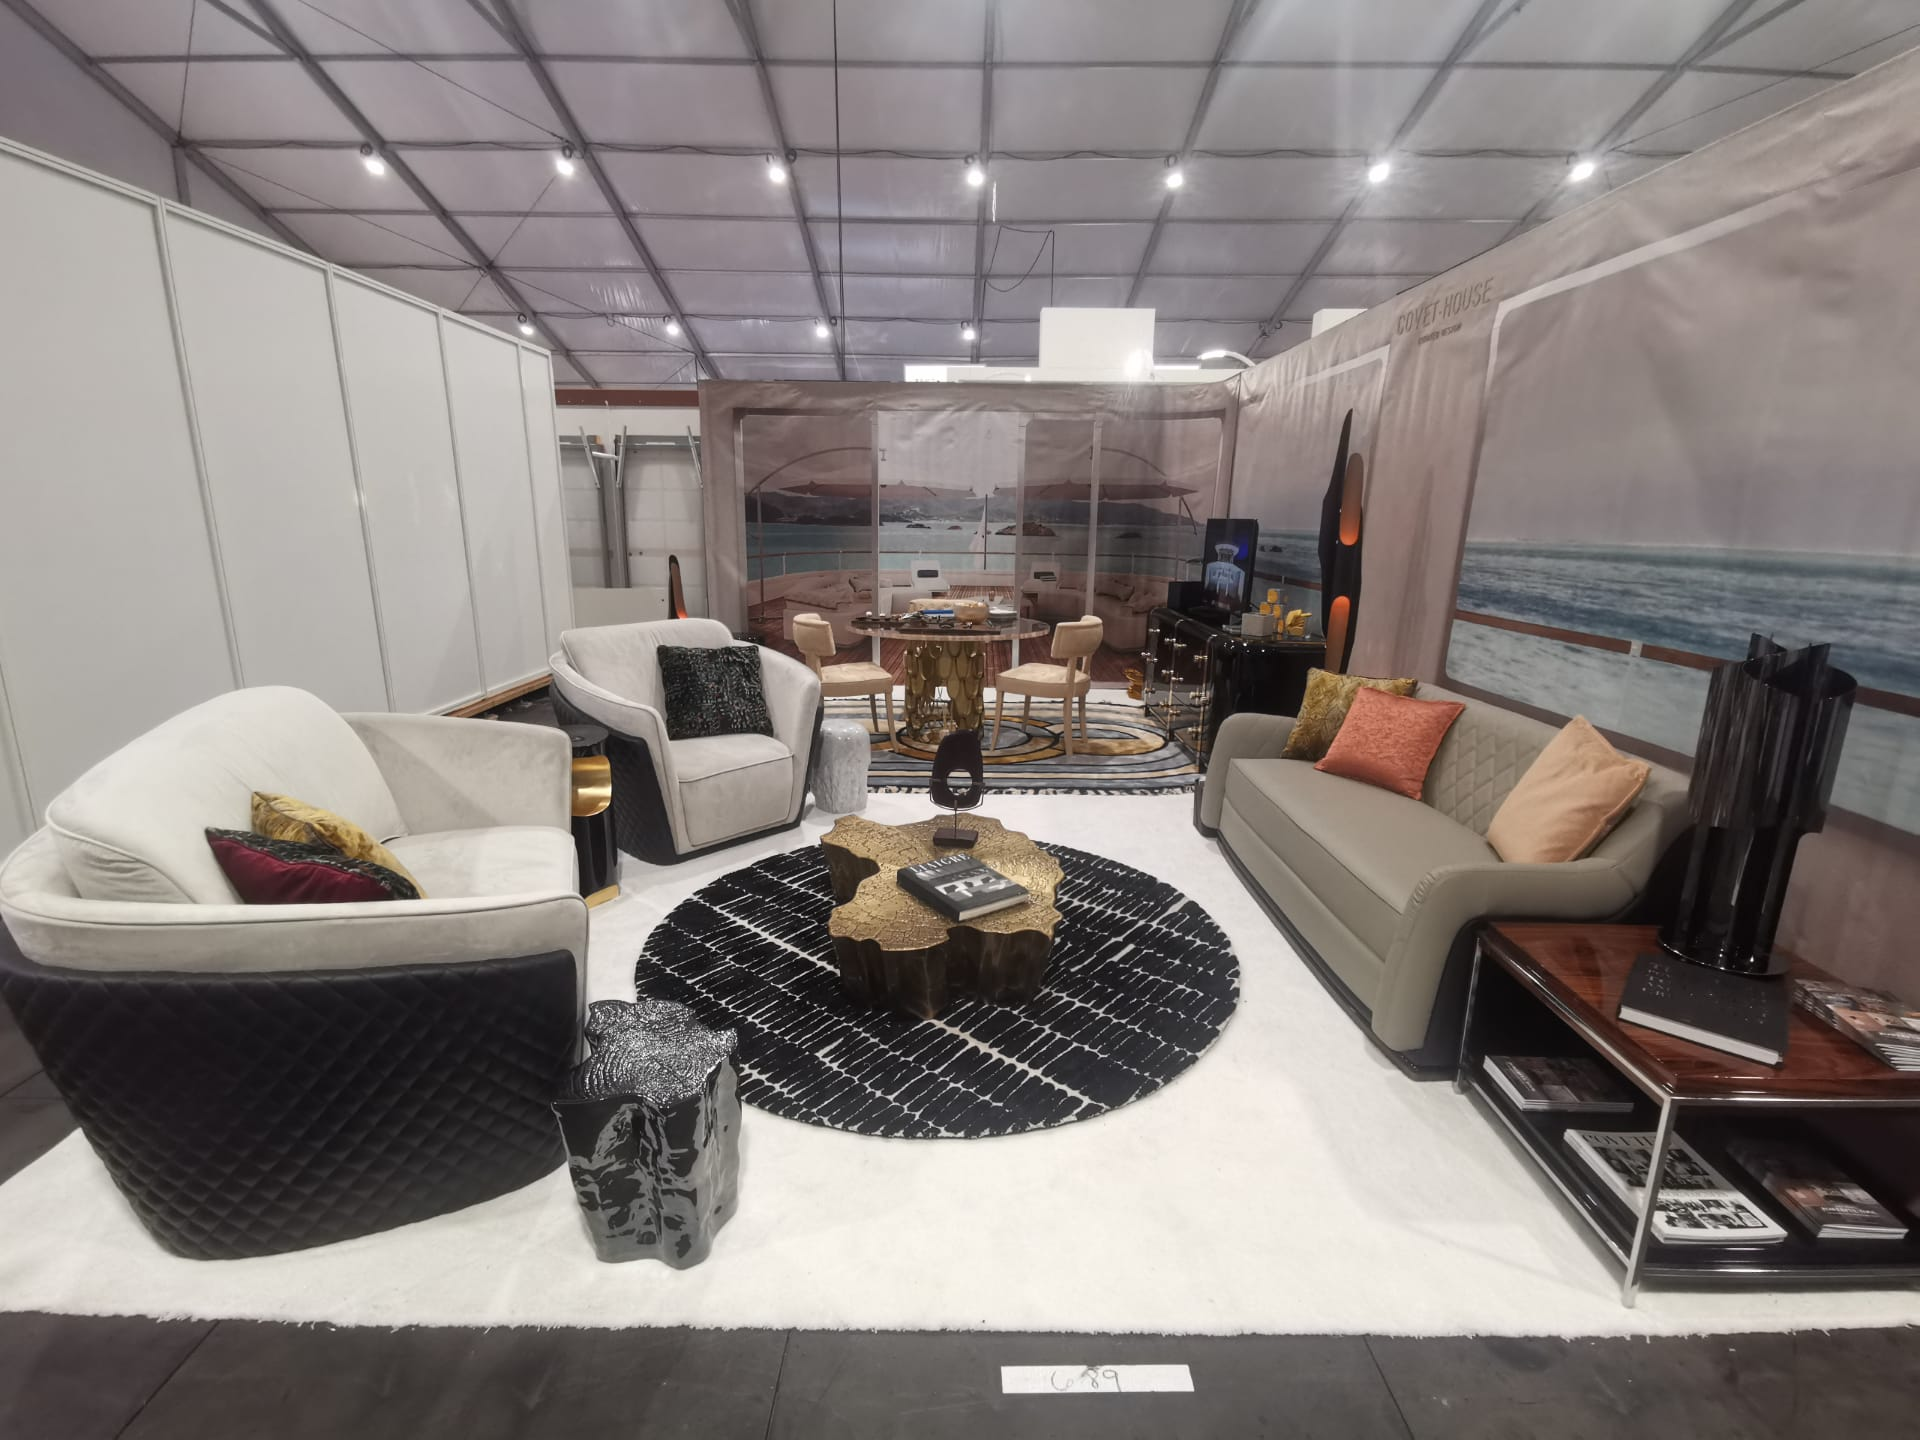 Fort Lauderdale International Boat Show: First Day Highlights